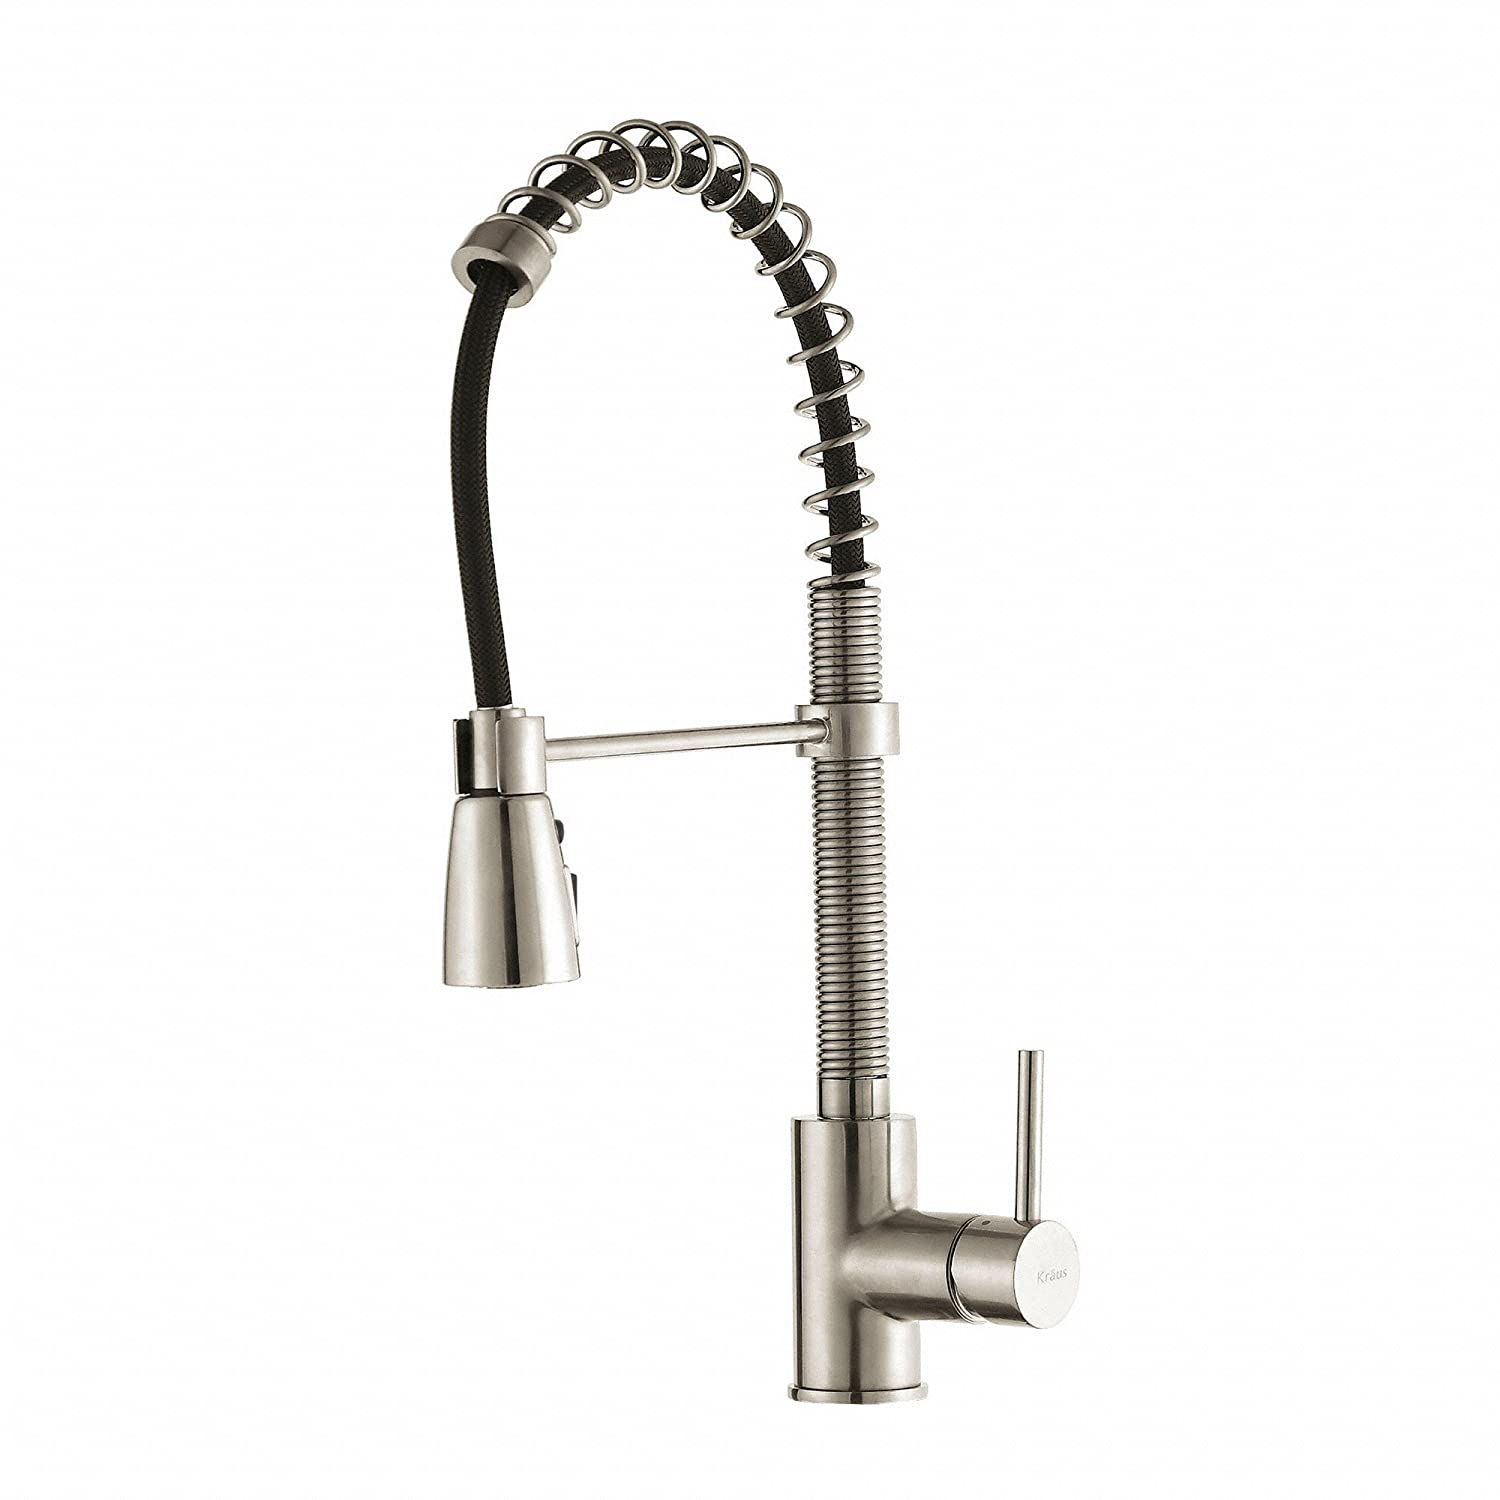 stainless kitchen american single down in standard huntley handle p selectflo faucets faucet steel sprayer pull